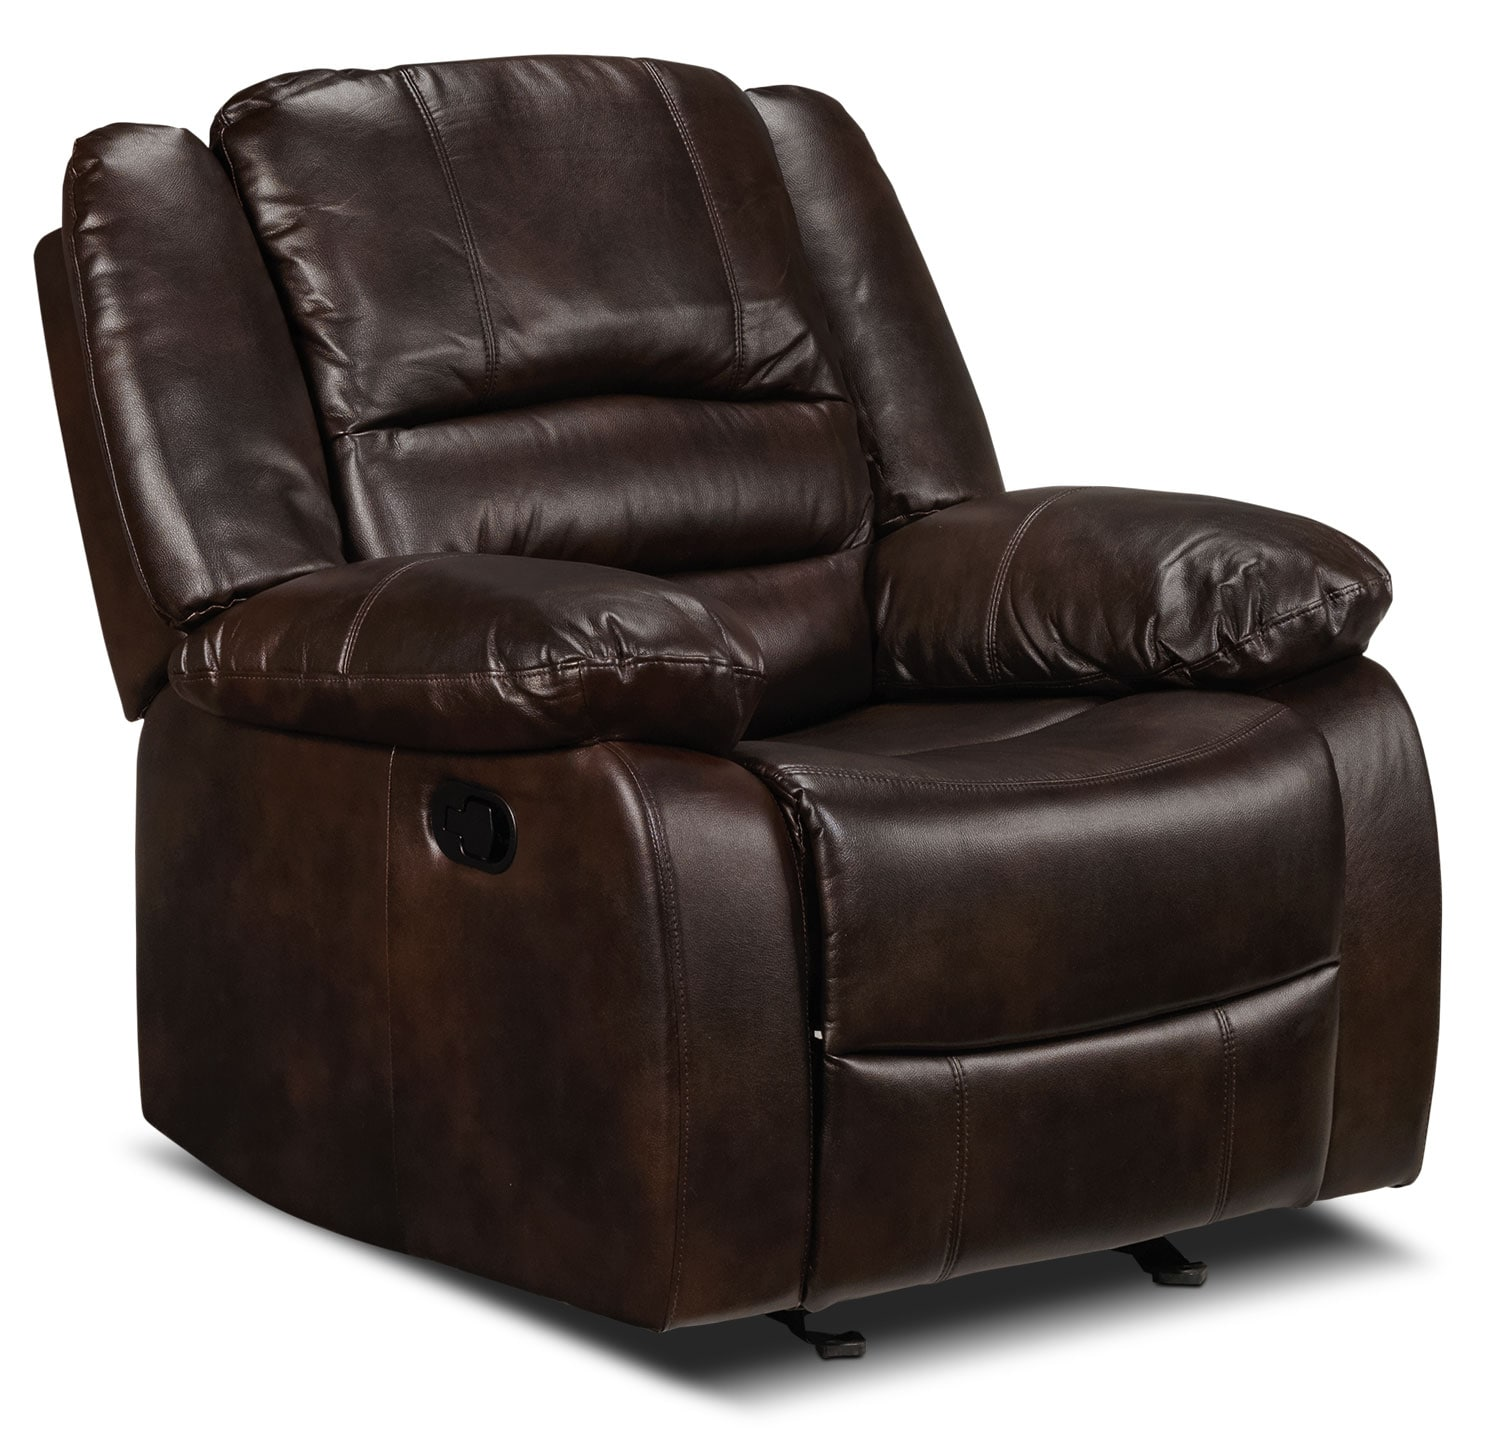 Living Room Furniture - Brooksdale Rocker Recliner - Deep Brown